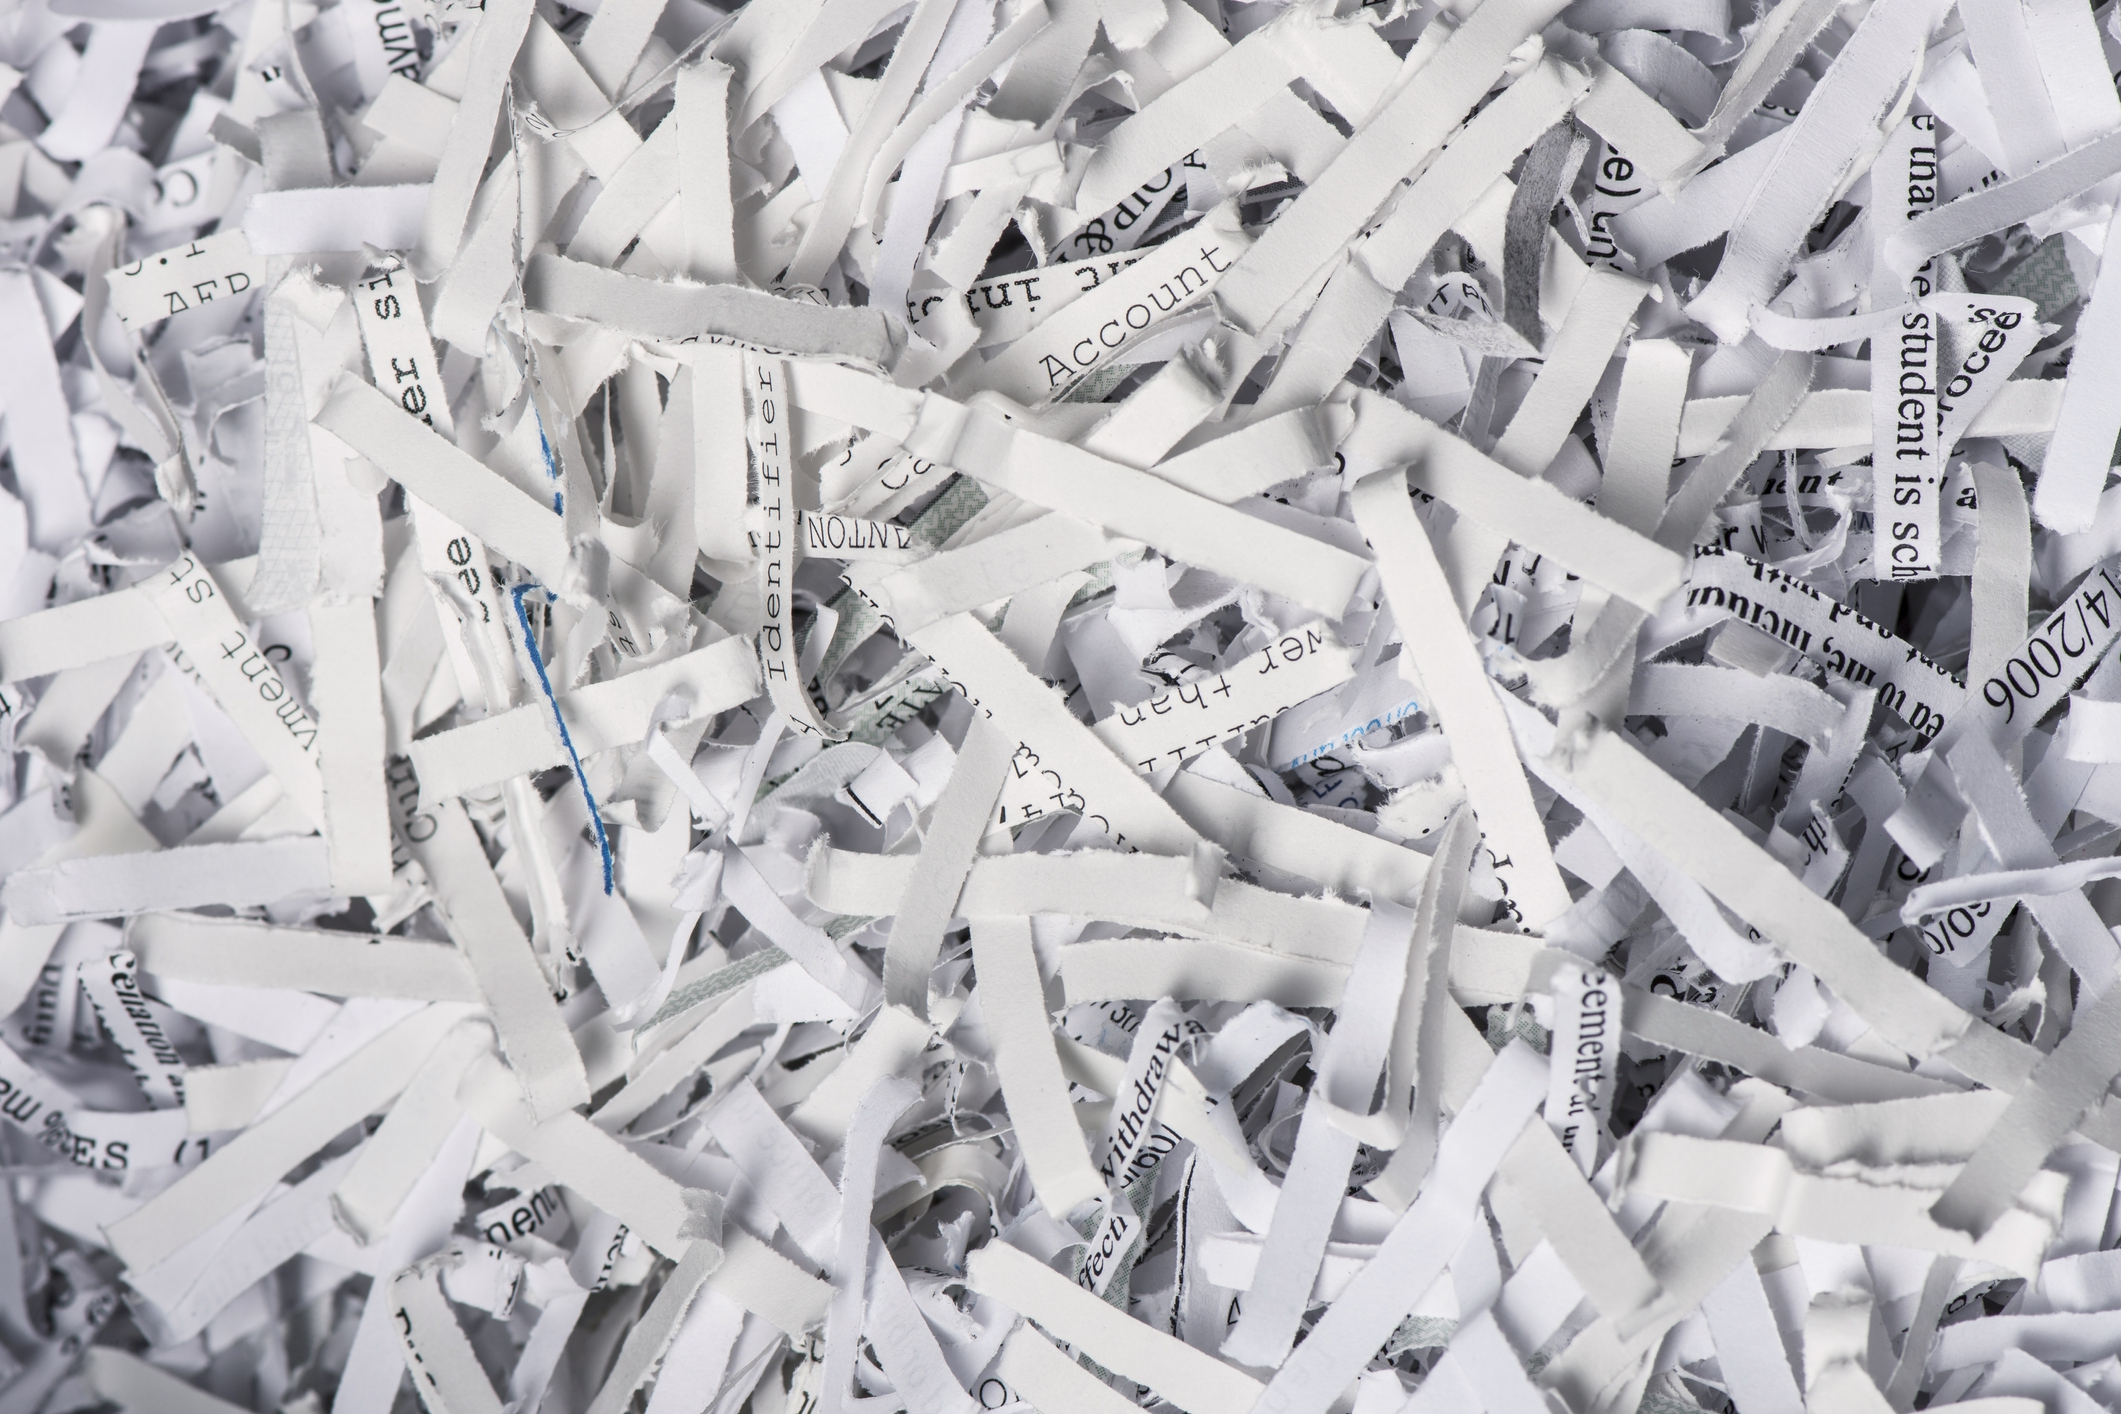 FCBT to Host Shredding Event in June